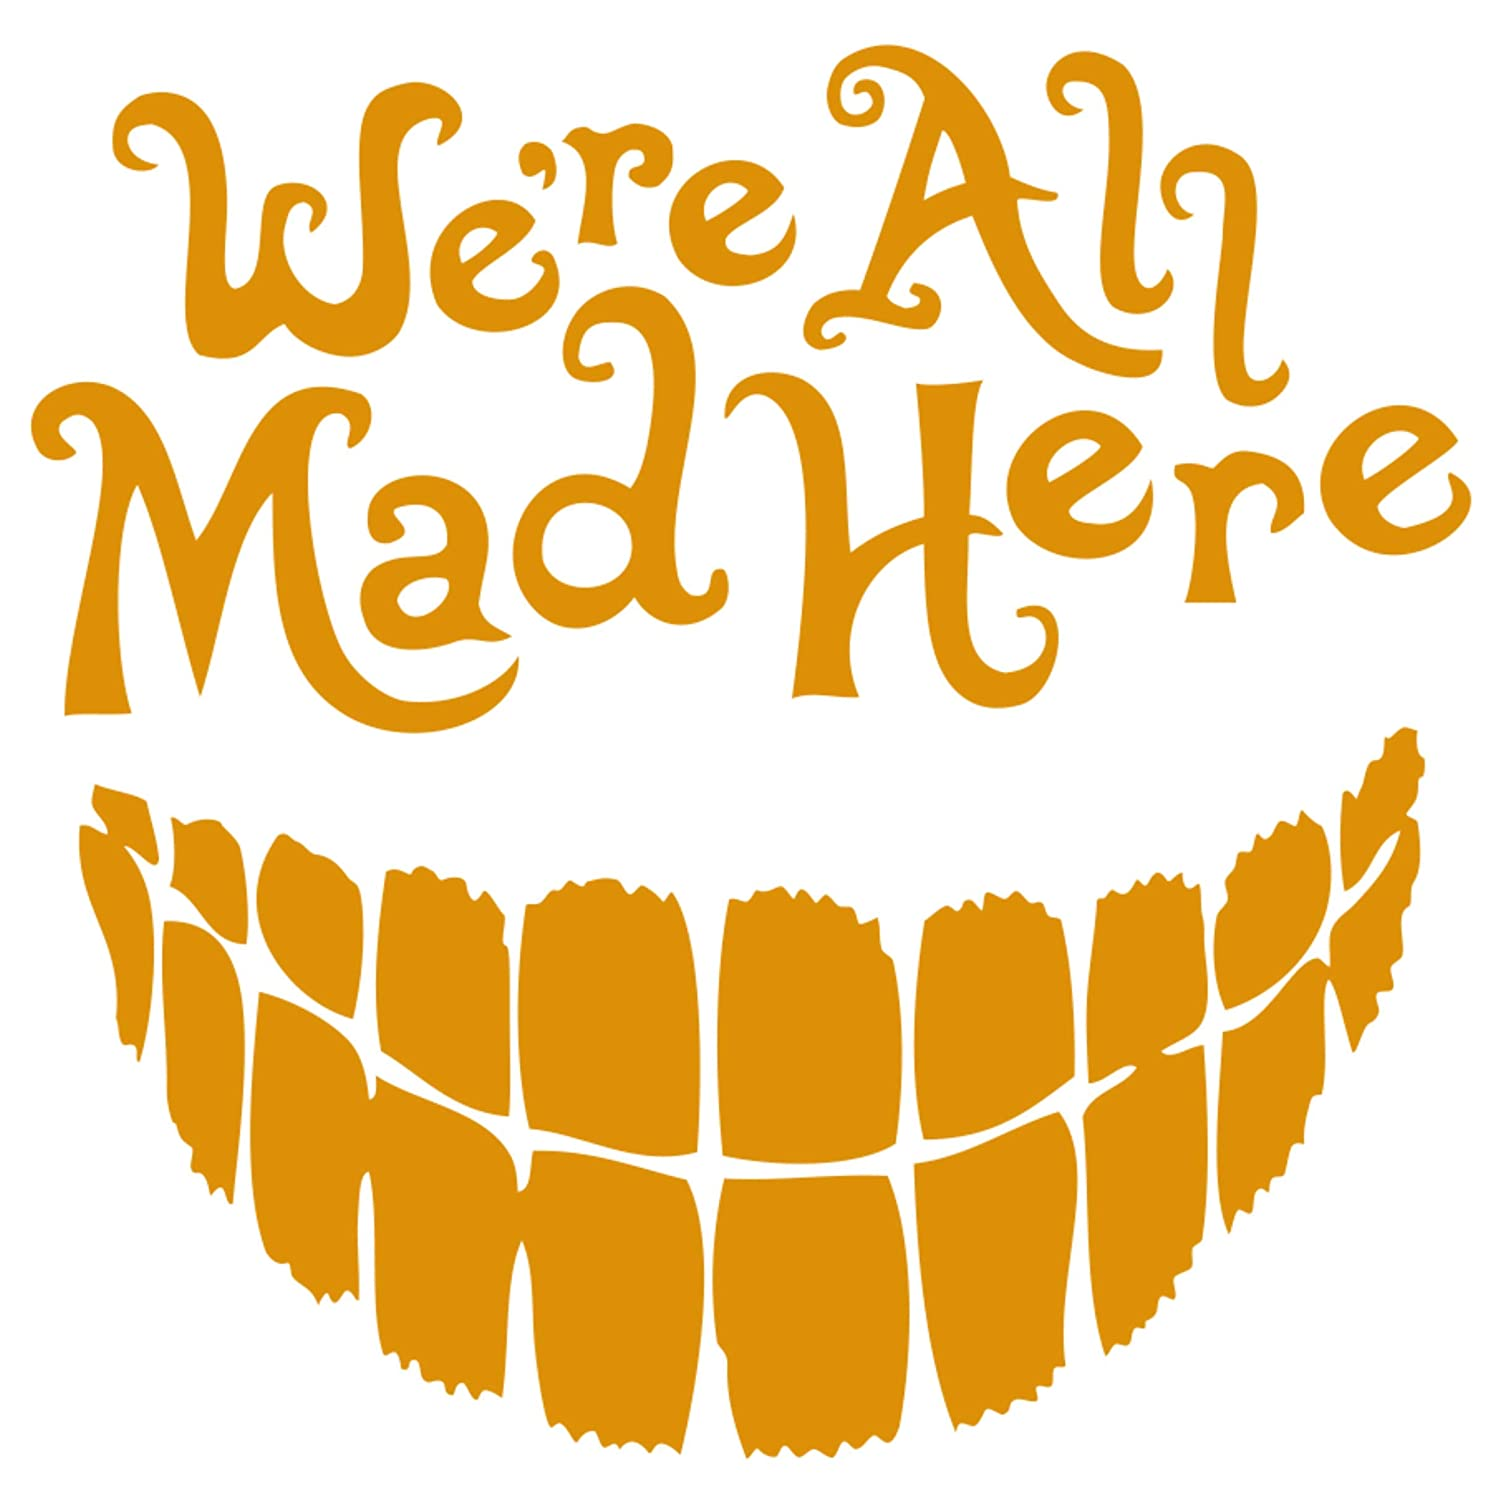 Vinyl car Decal Decal Dude Light Purple, 4.5 Were All Mad Here with a Big Smile Signage Cafe Alice in Wonderland 4.5